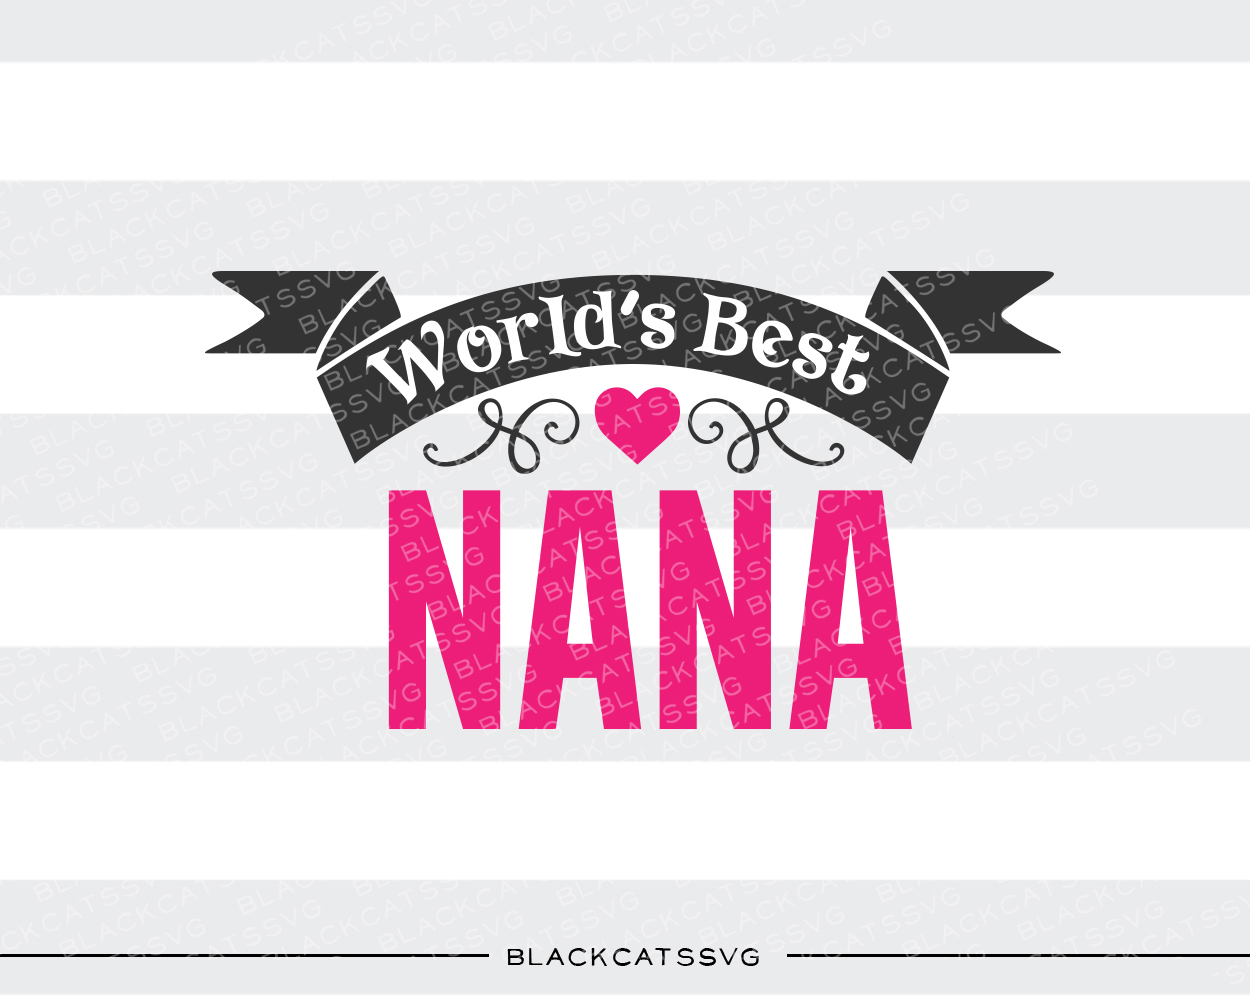 World's Best Nana Kinder Plotterdatei von BlackCatsSVG